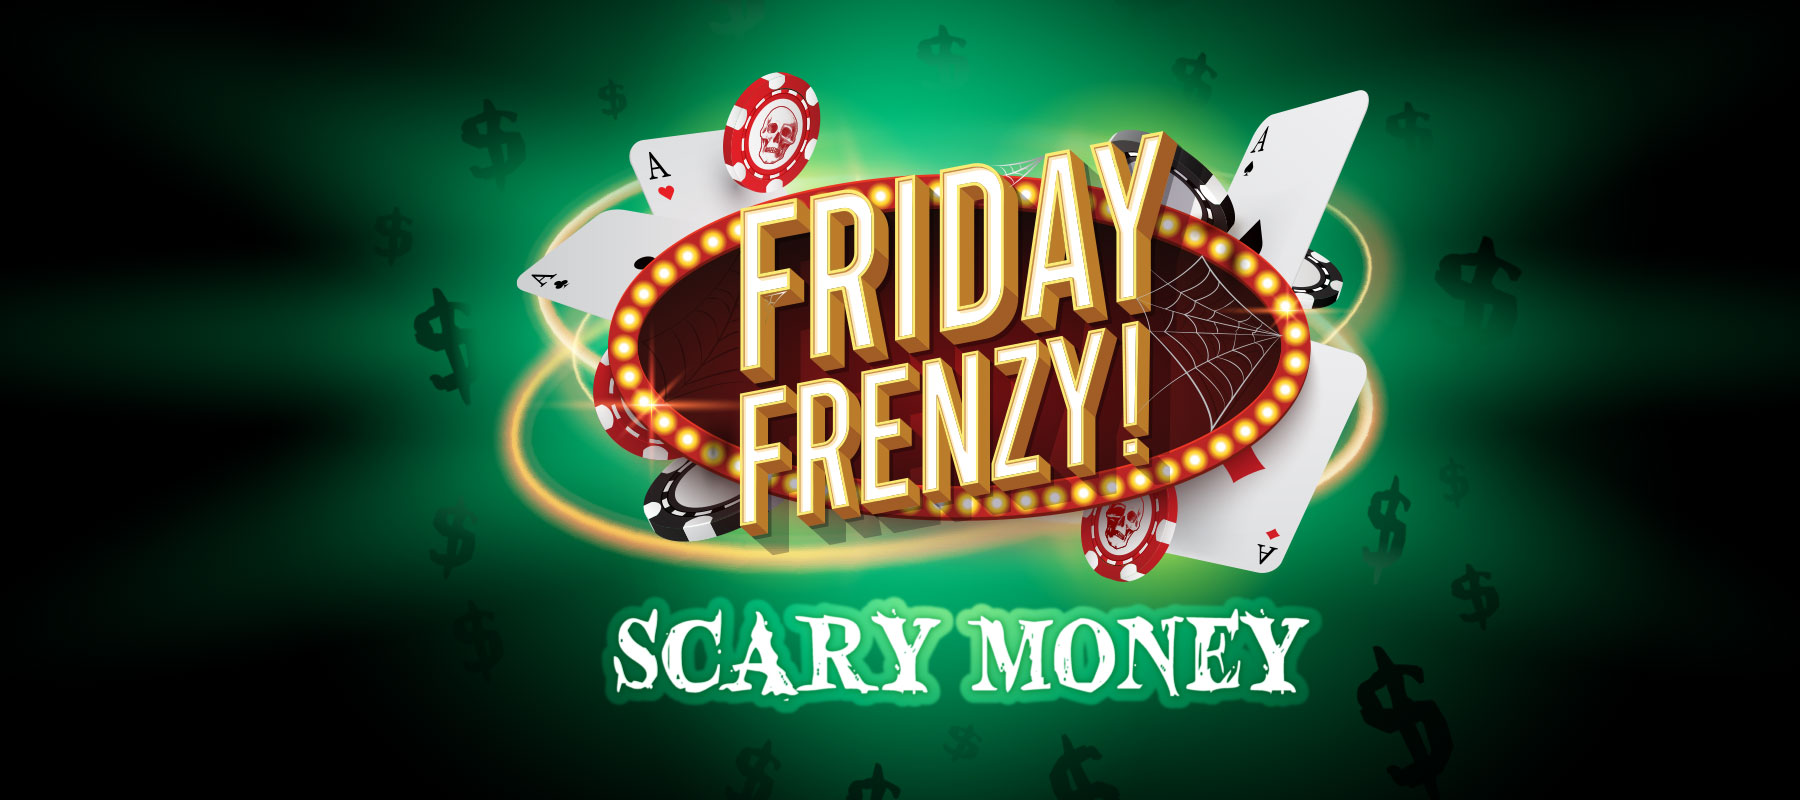 Friday Frenzy Scary Money